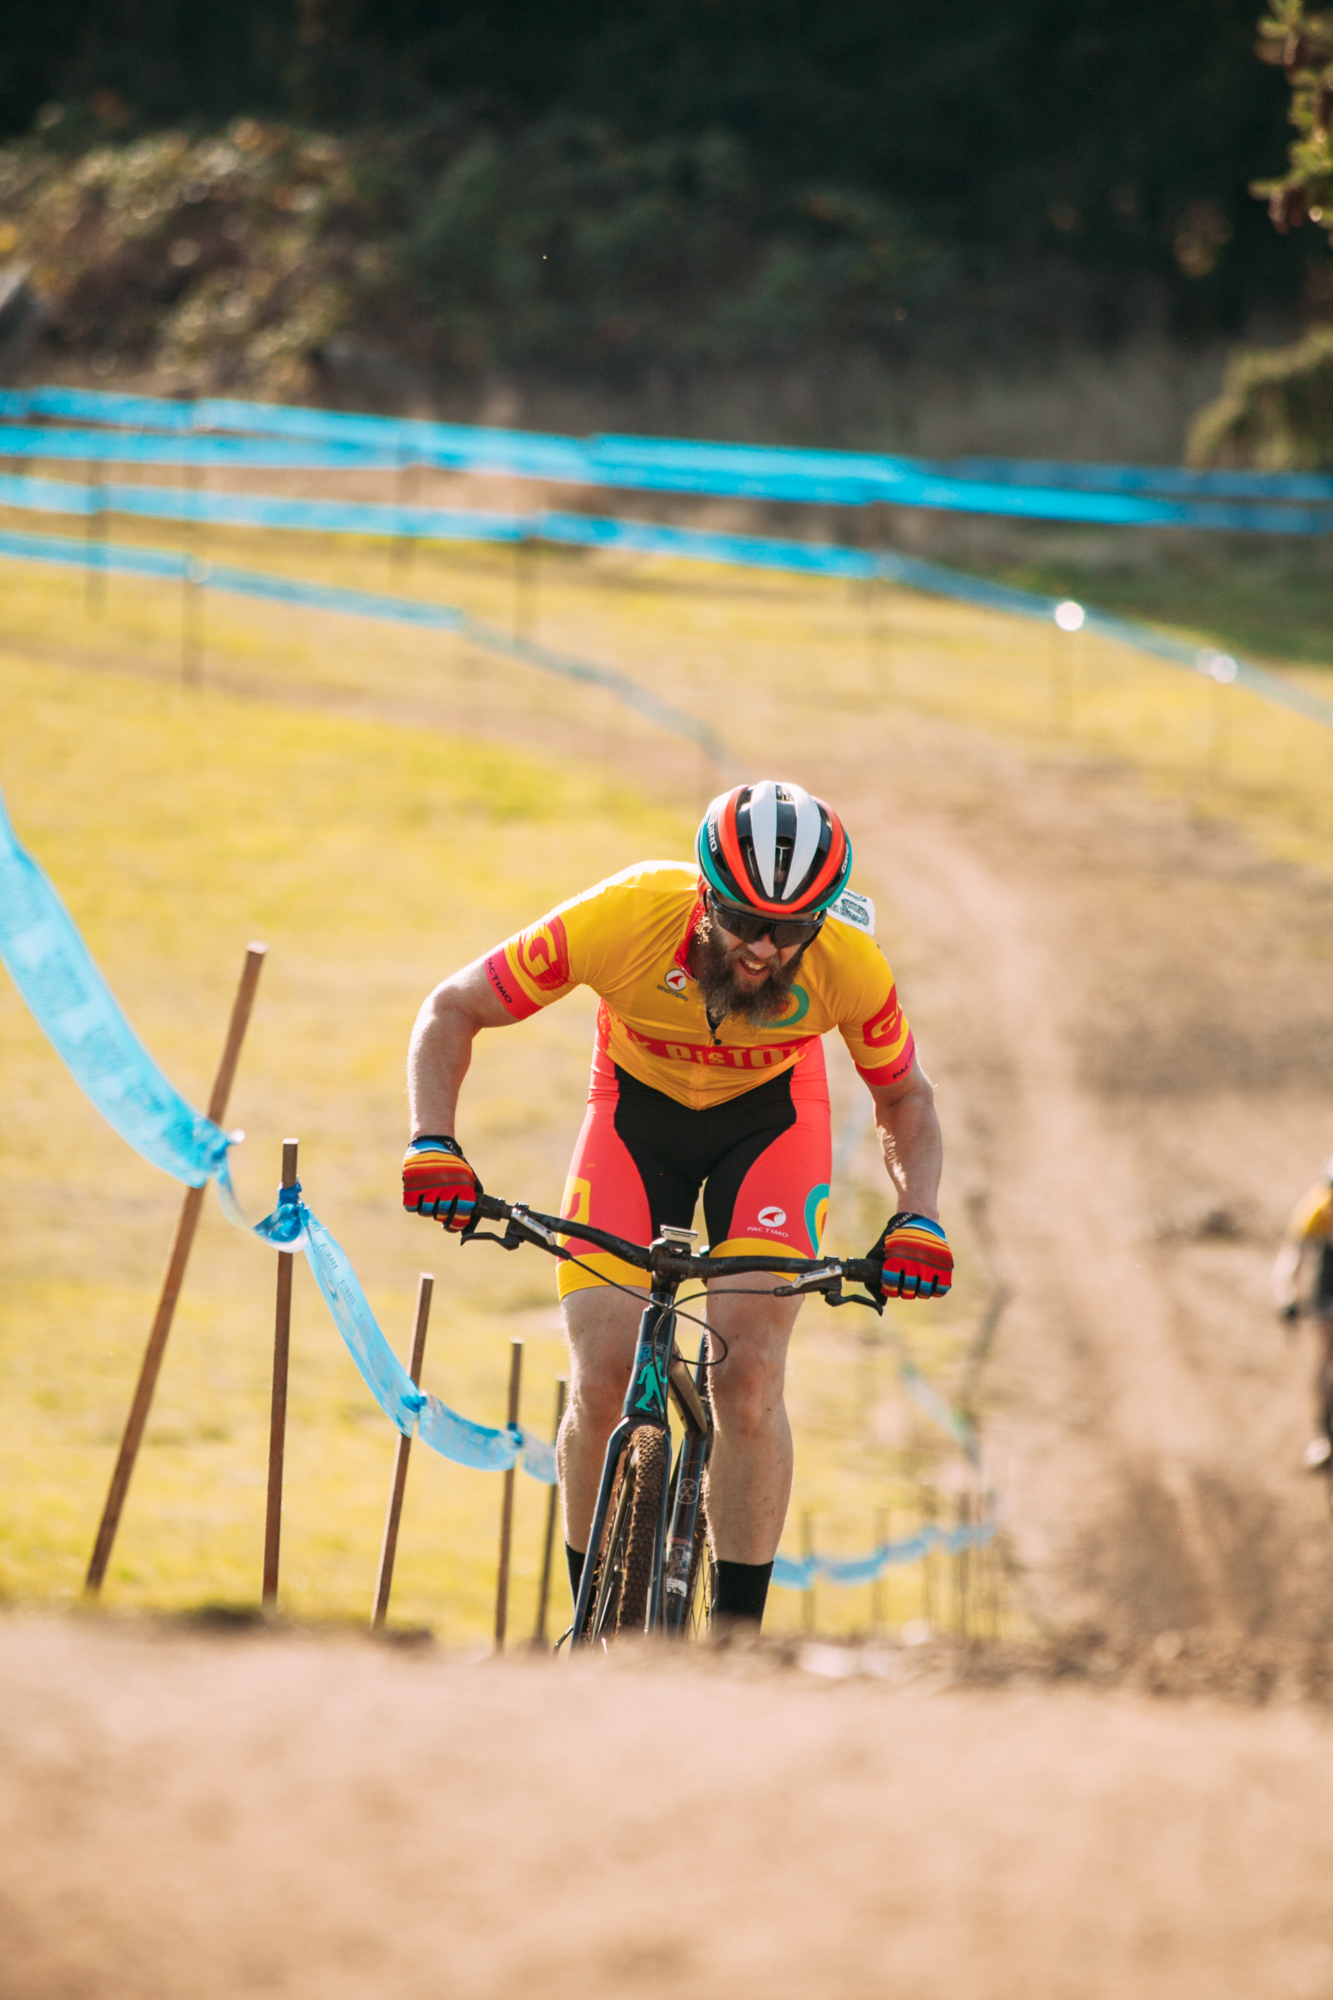 Cyclocross18_CCCX_RainierHS-228-mettlecycling.jpg